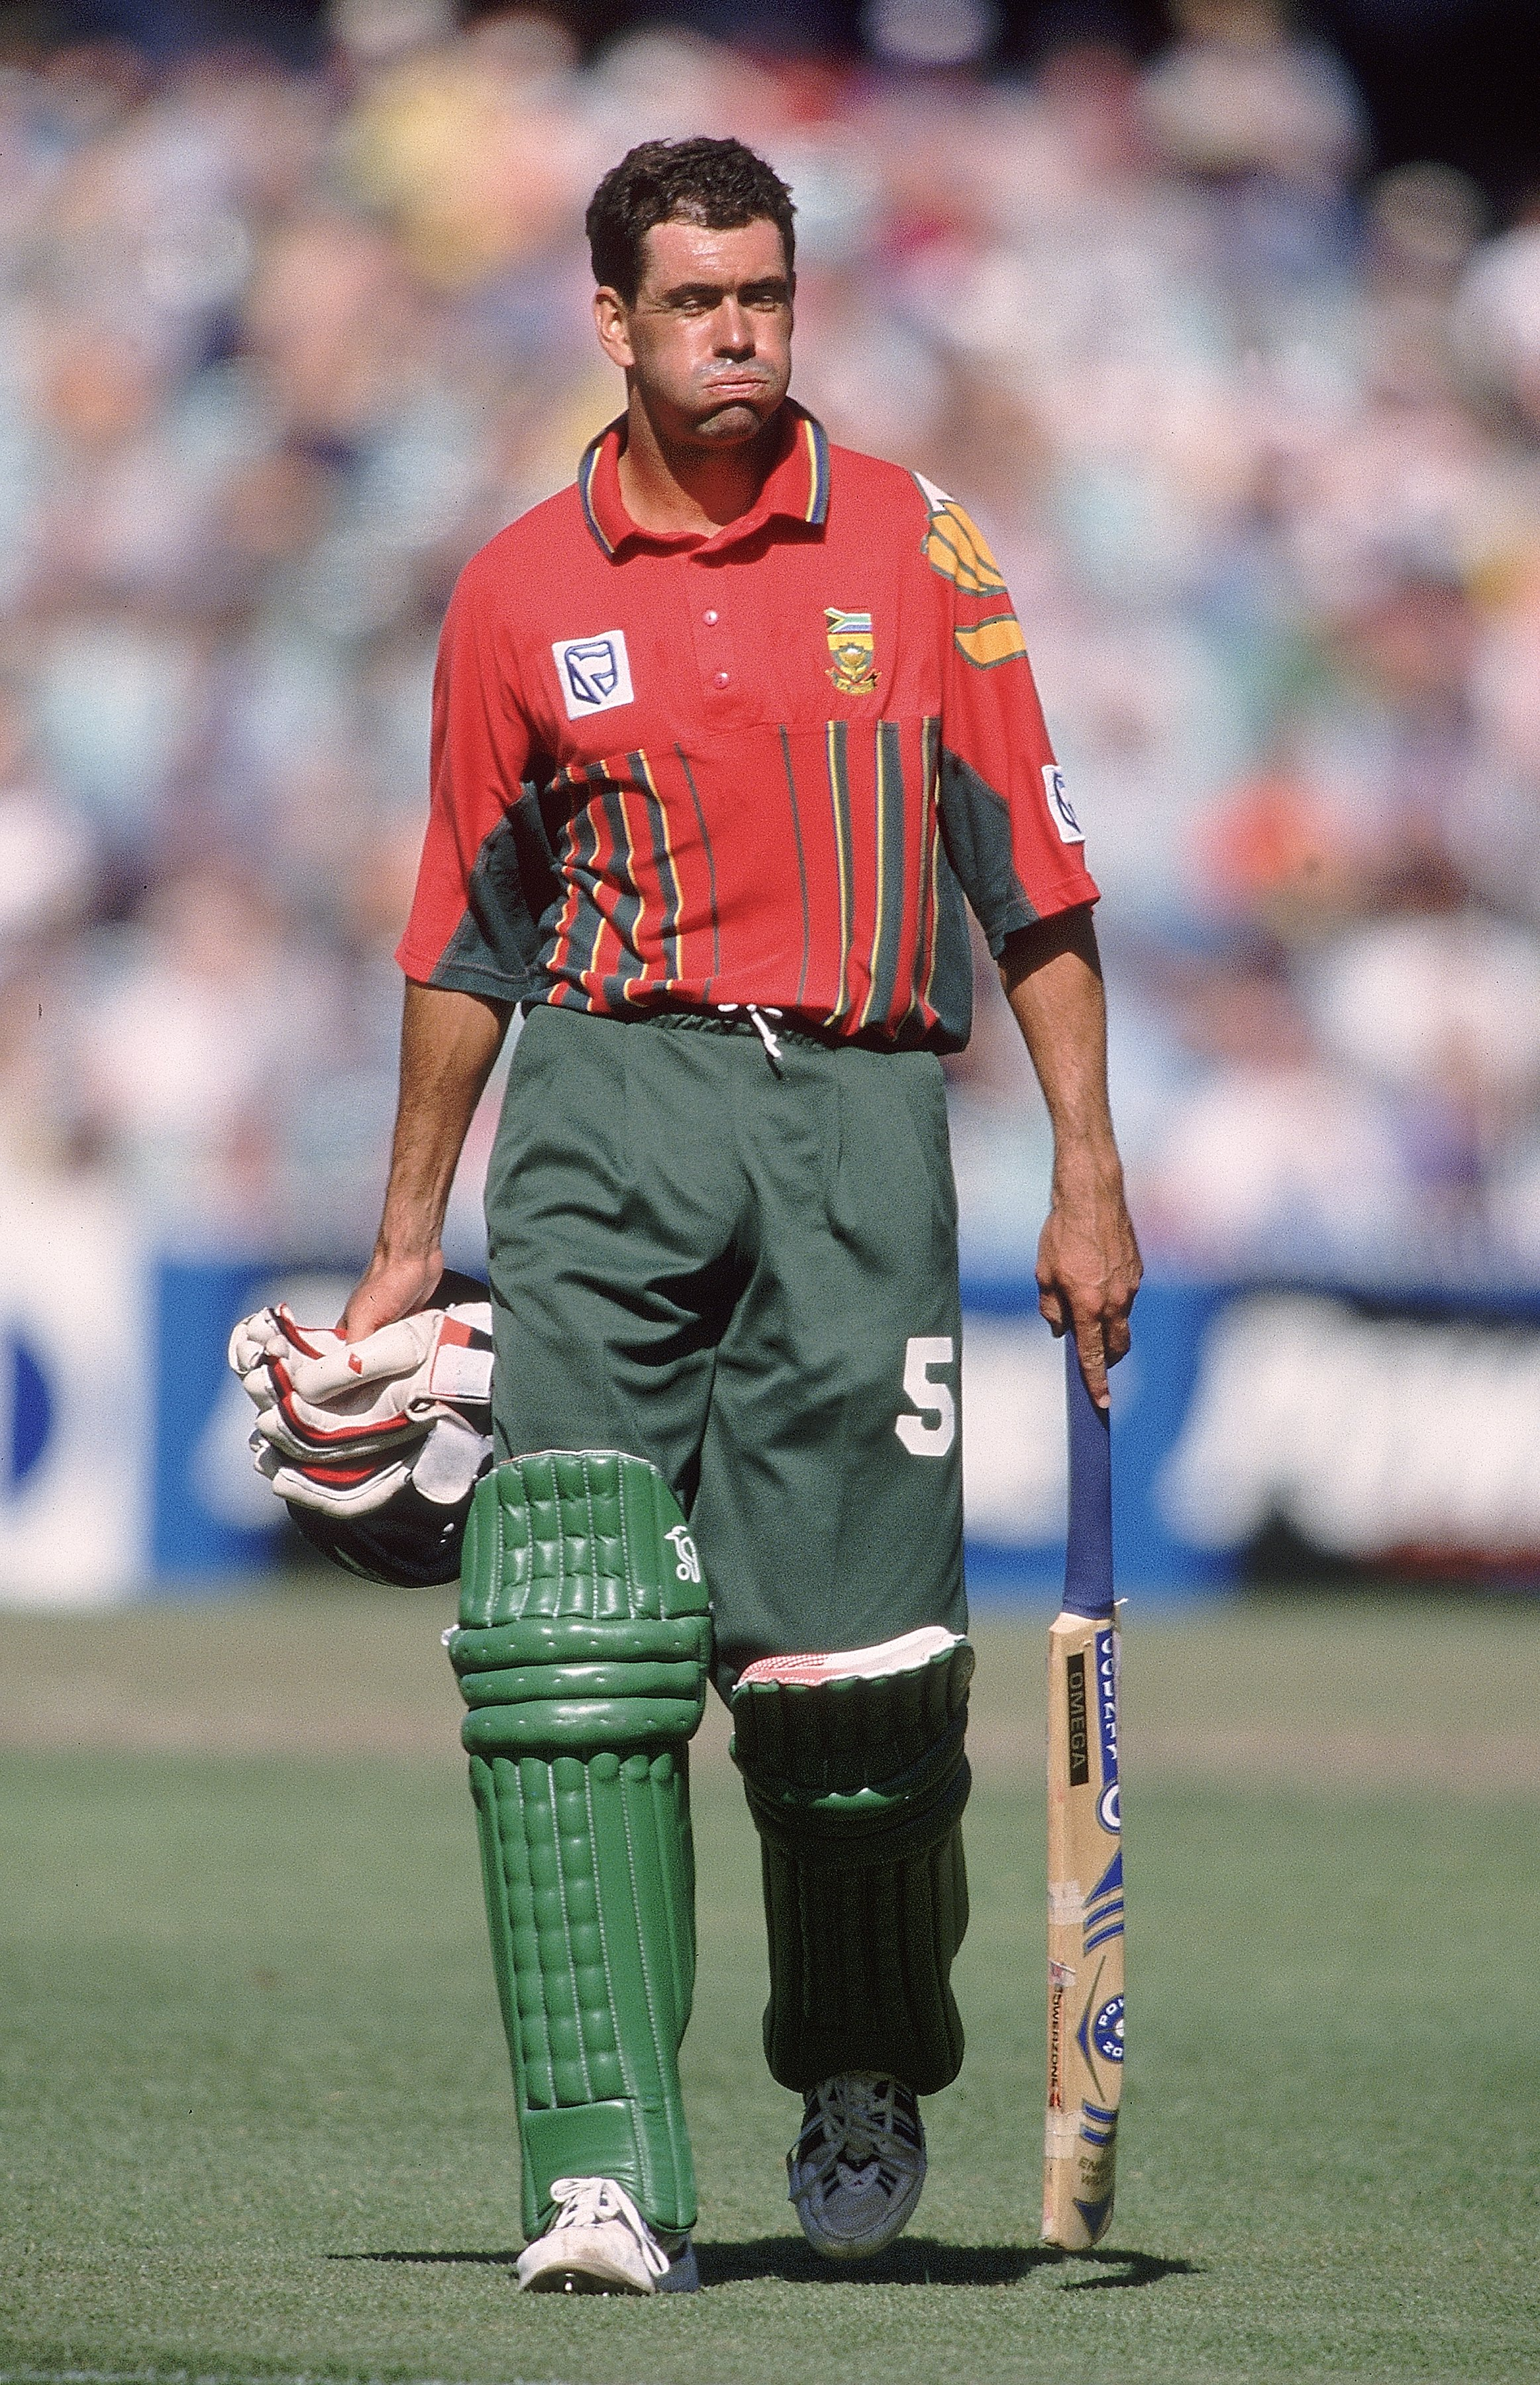 23 Jan 1998:  Hansie Cronje of South Africa shows his disappointment after getting out for 29 in the First Final of the Carlton and United Breweries One-Day International Series at the MCG in Melbourne, Australia. South Africa beat Australia by 6 runs. \M